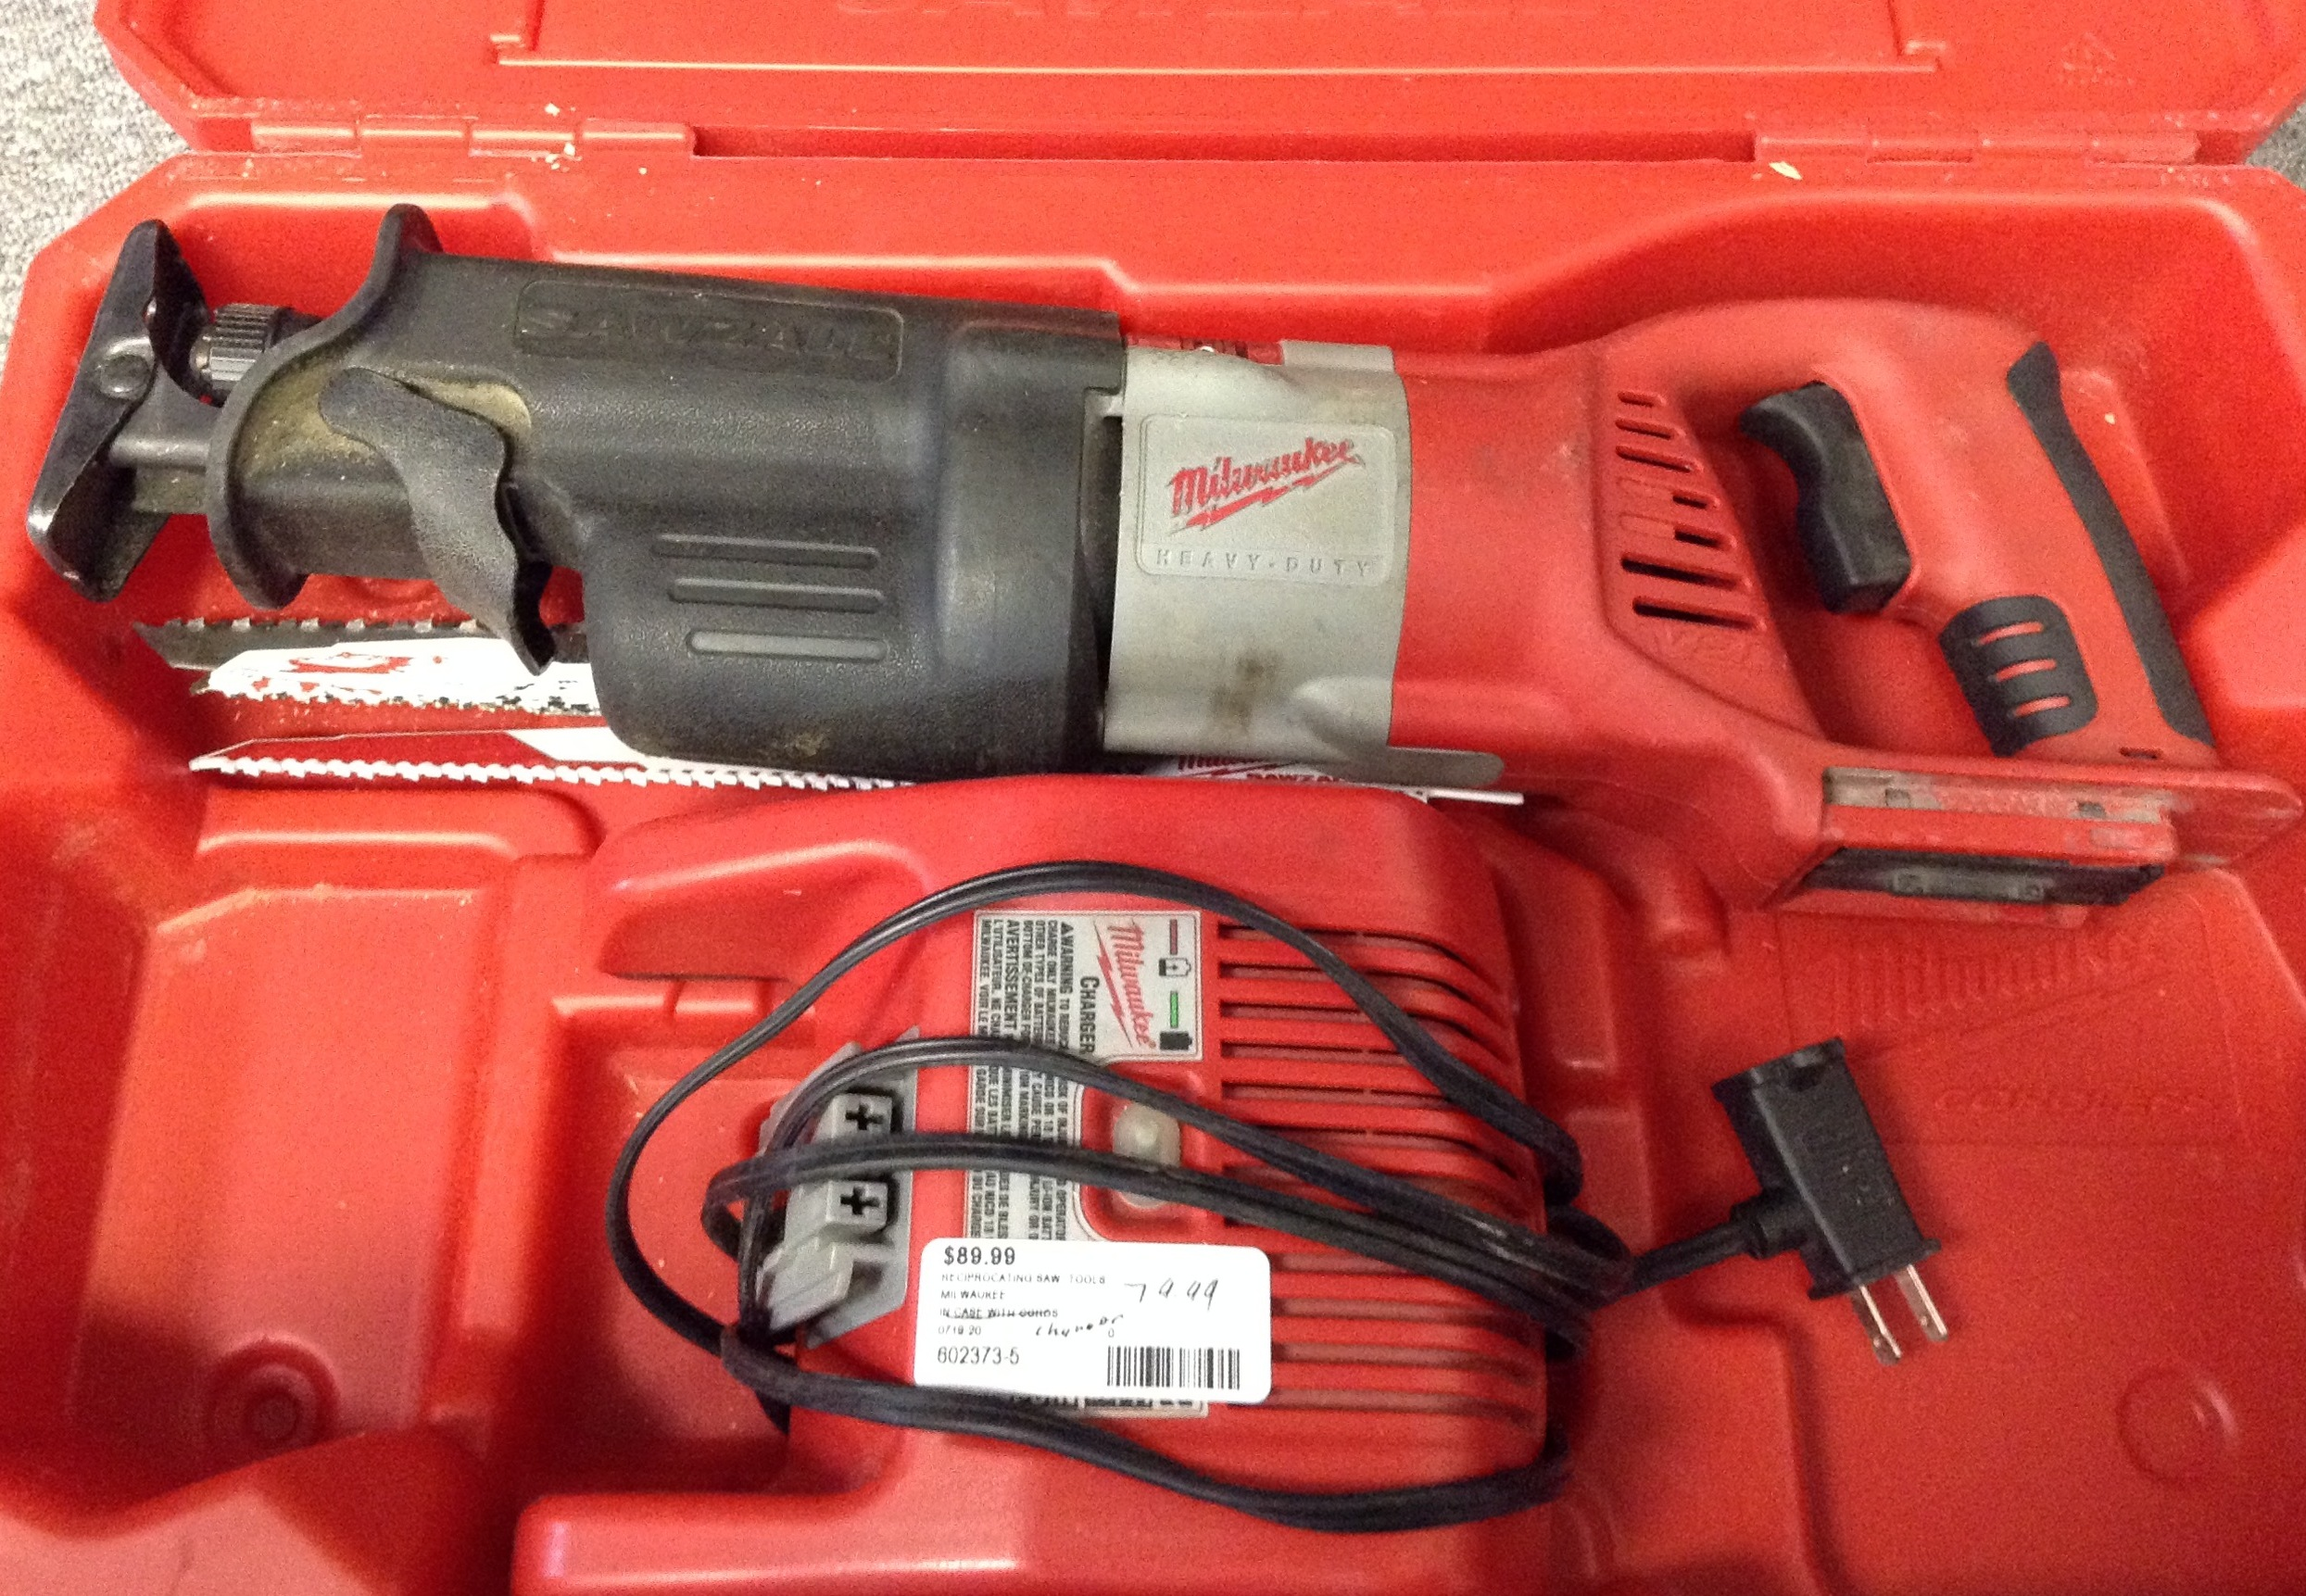 MILWAUKEE 0719-20 RECIPROCATING SAW (TOOL & CHARGER ONLY)